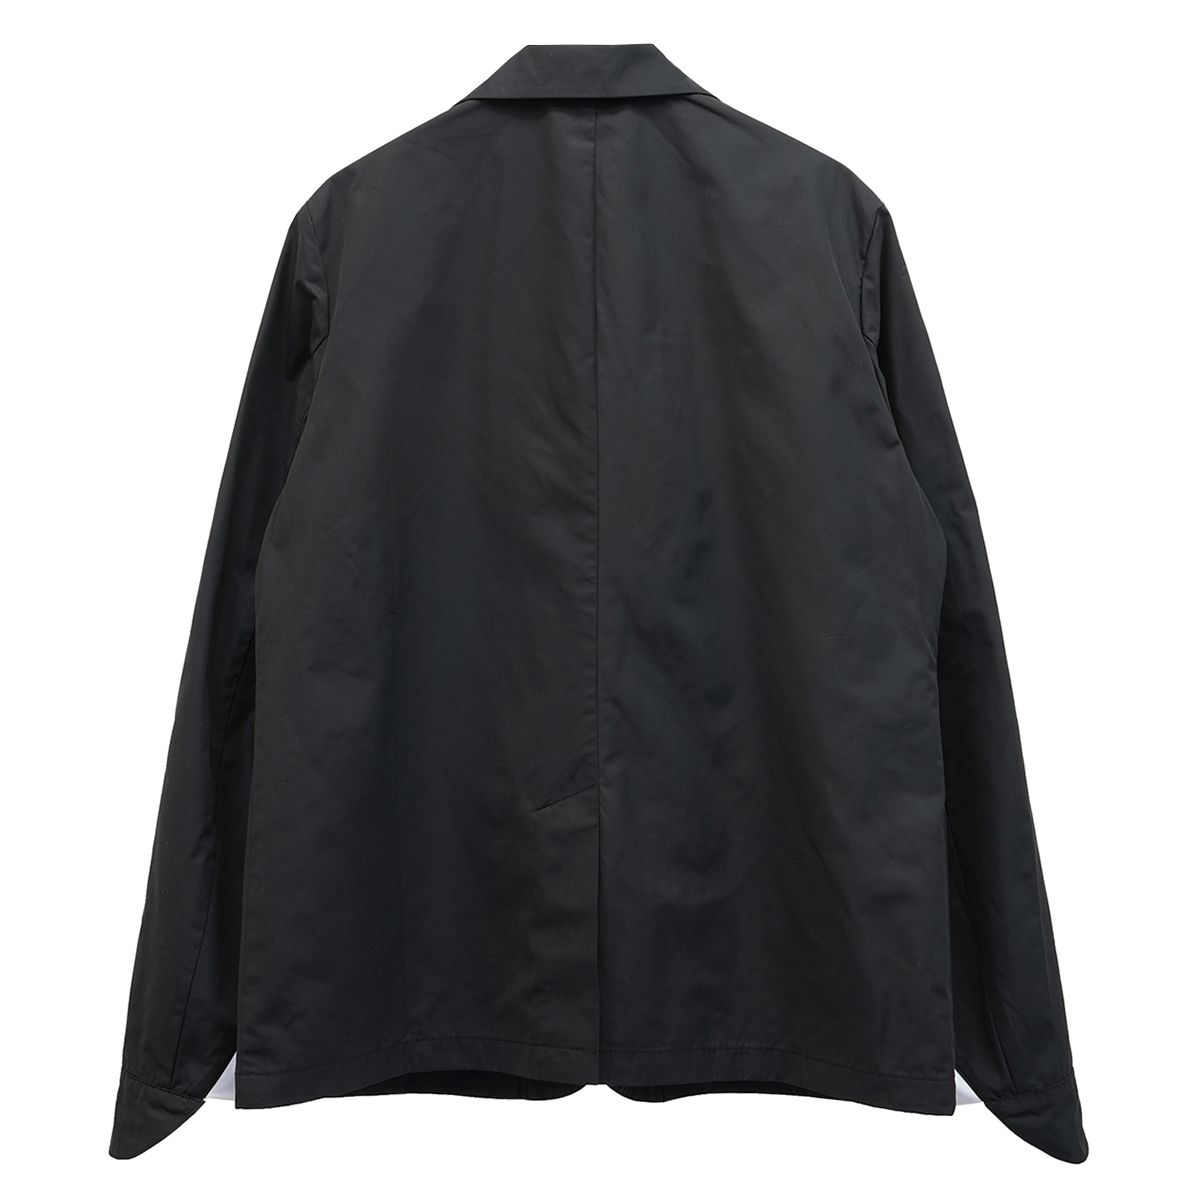 Jichoi WORK JACKET / BLACK-WHITE